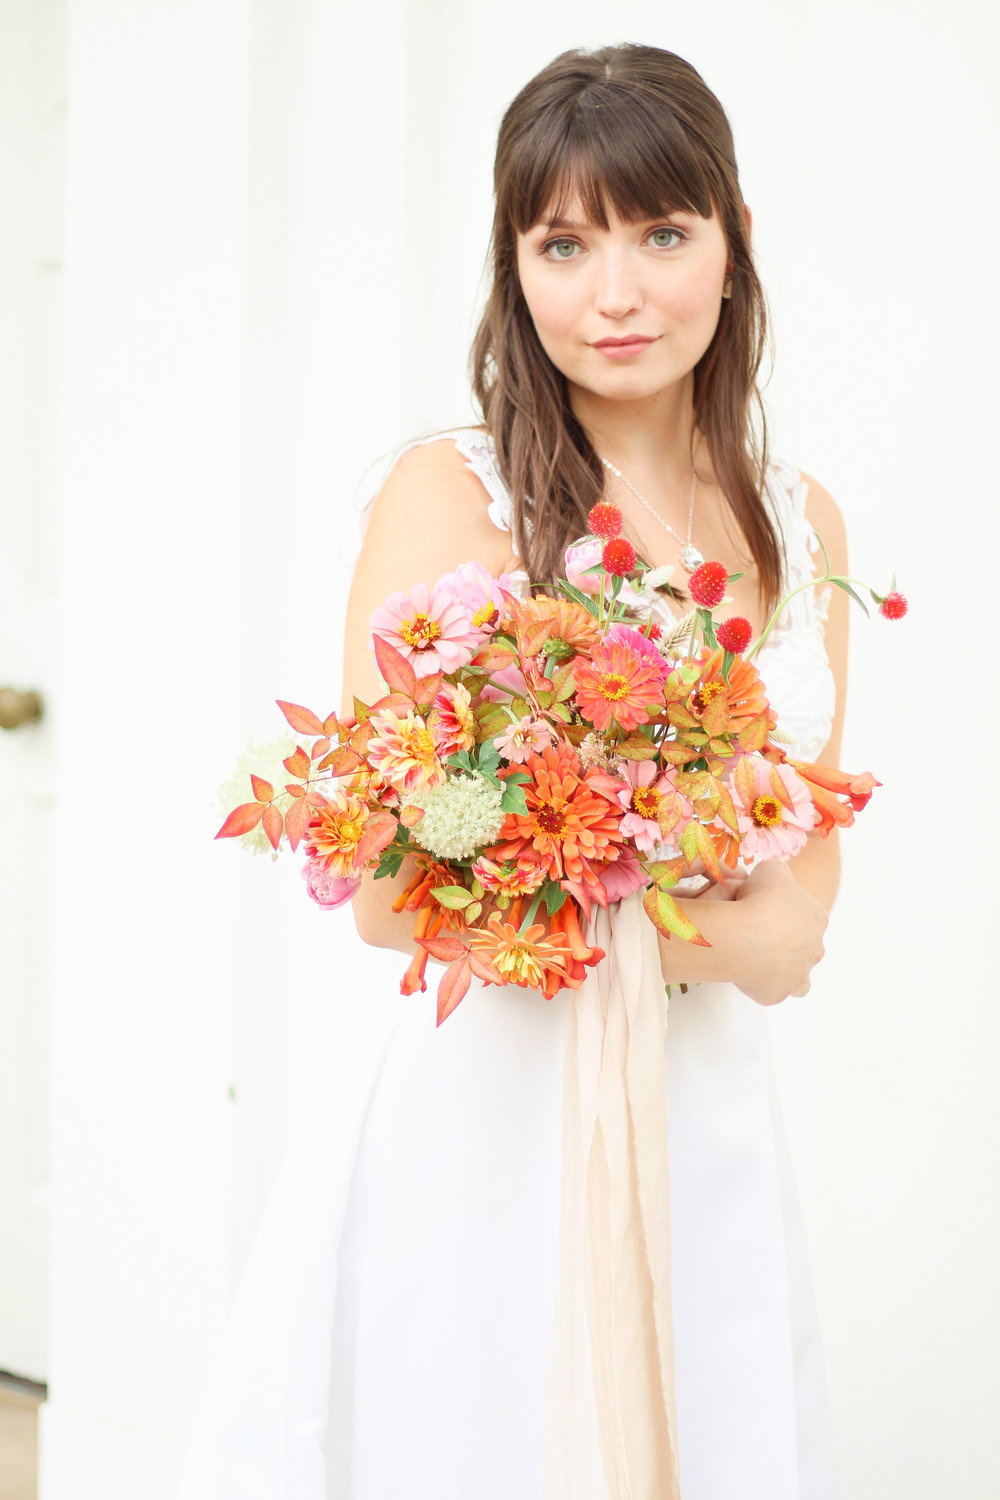 tallahassee_bride_wedding_florist_bright_pink_bouquet_fall_wedding_inspiration.jpg